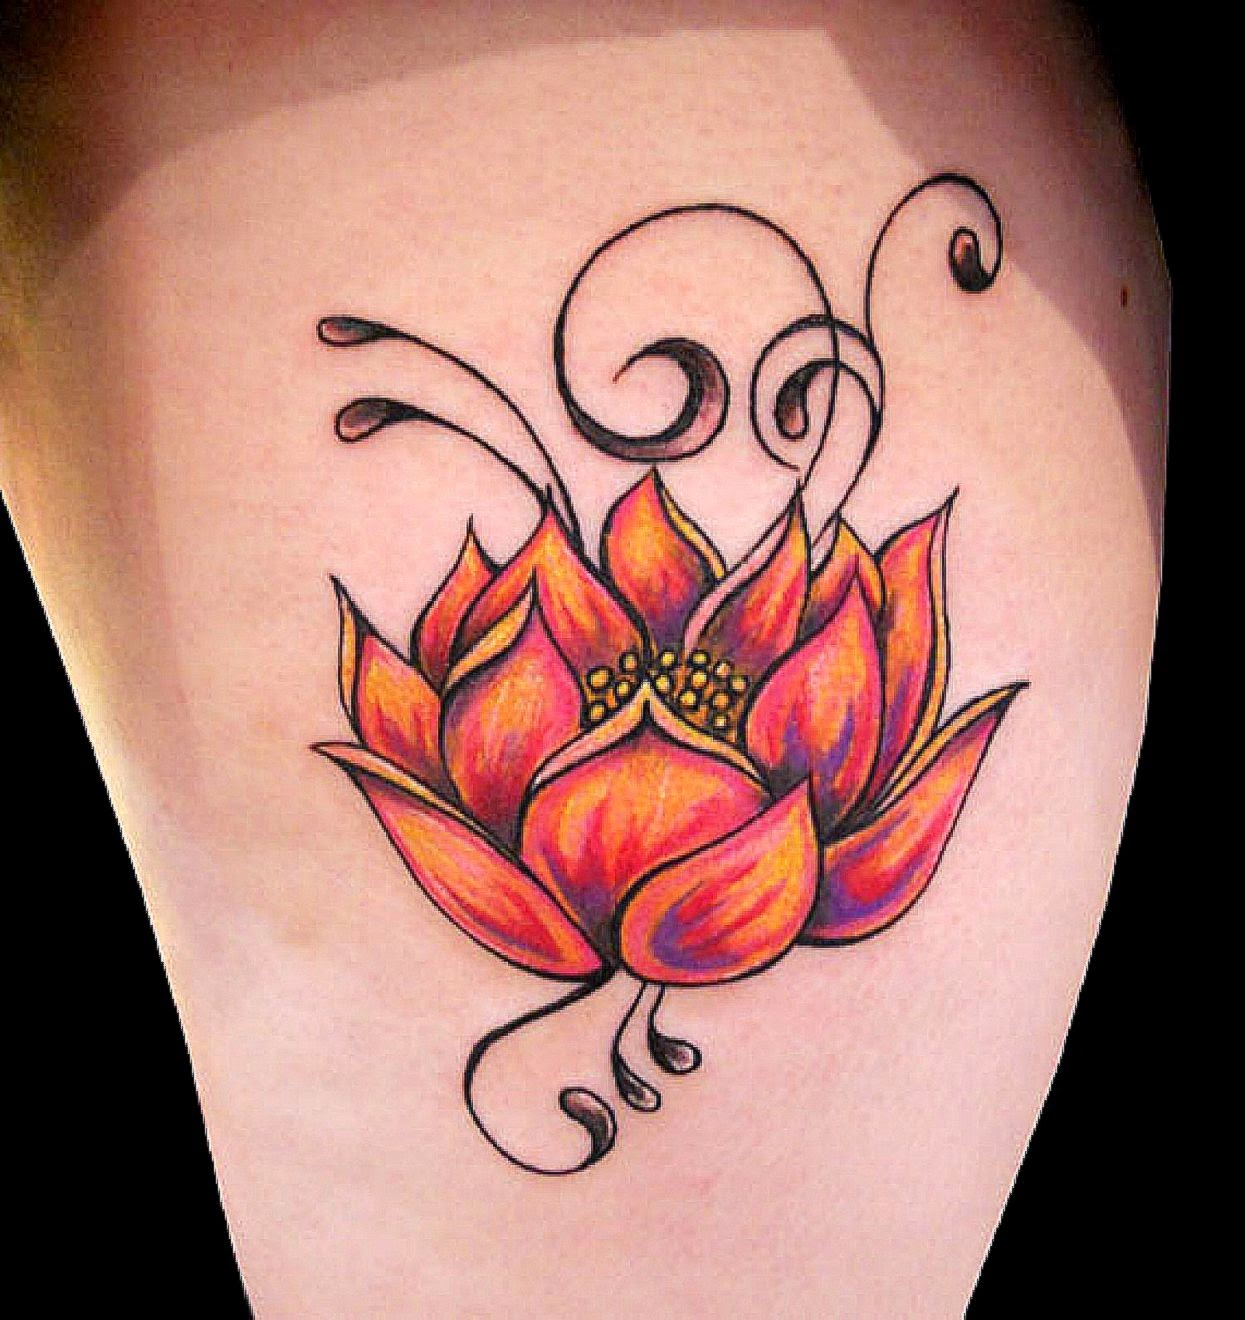 lotus flower tattoo free tattoo pictures. Black Bedroom Furniture Sets. Home Design Ideas